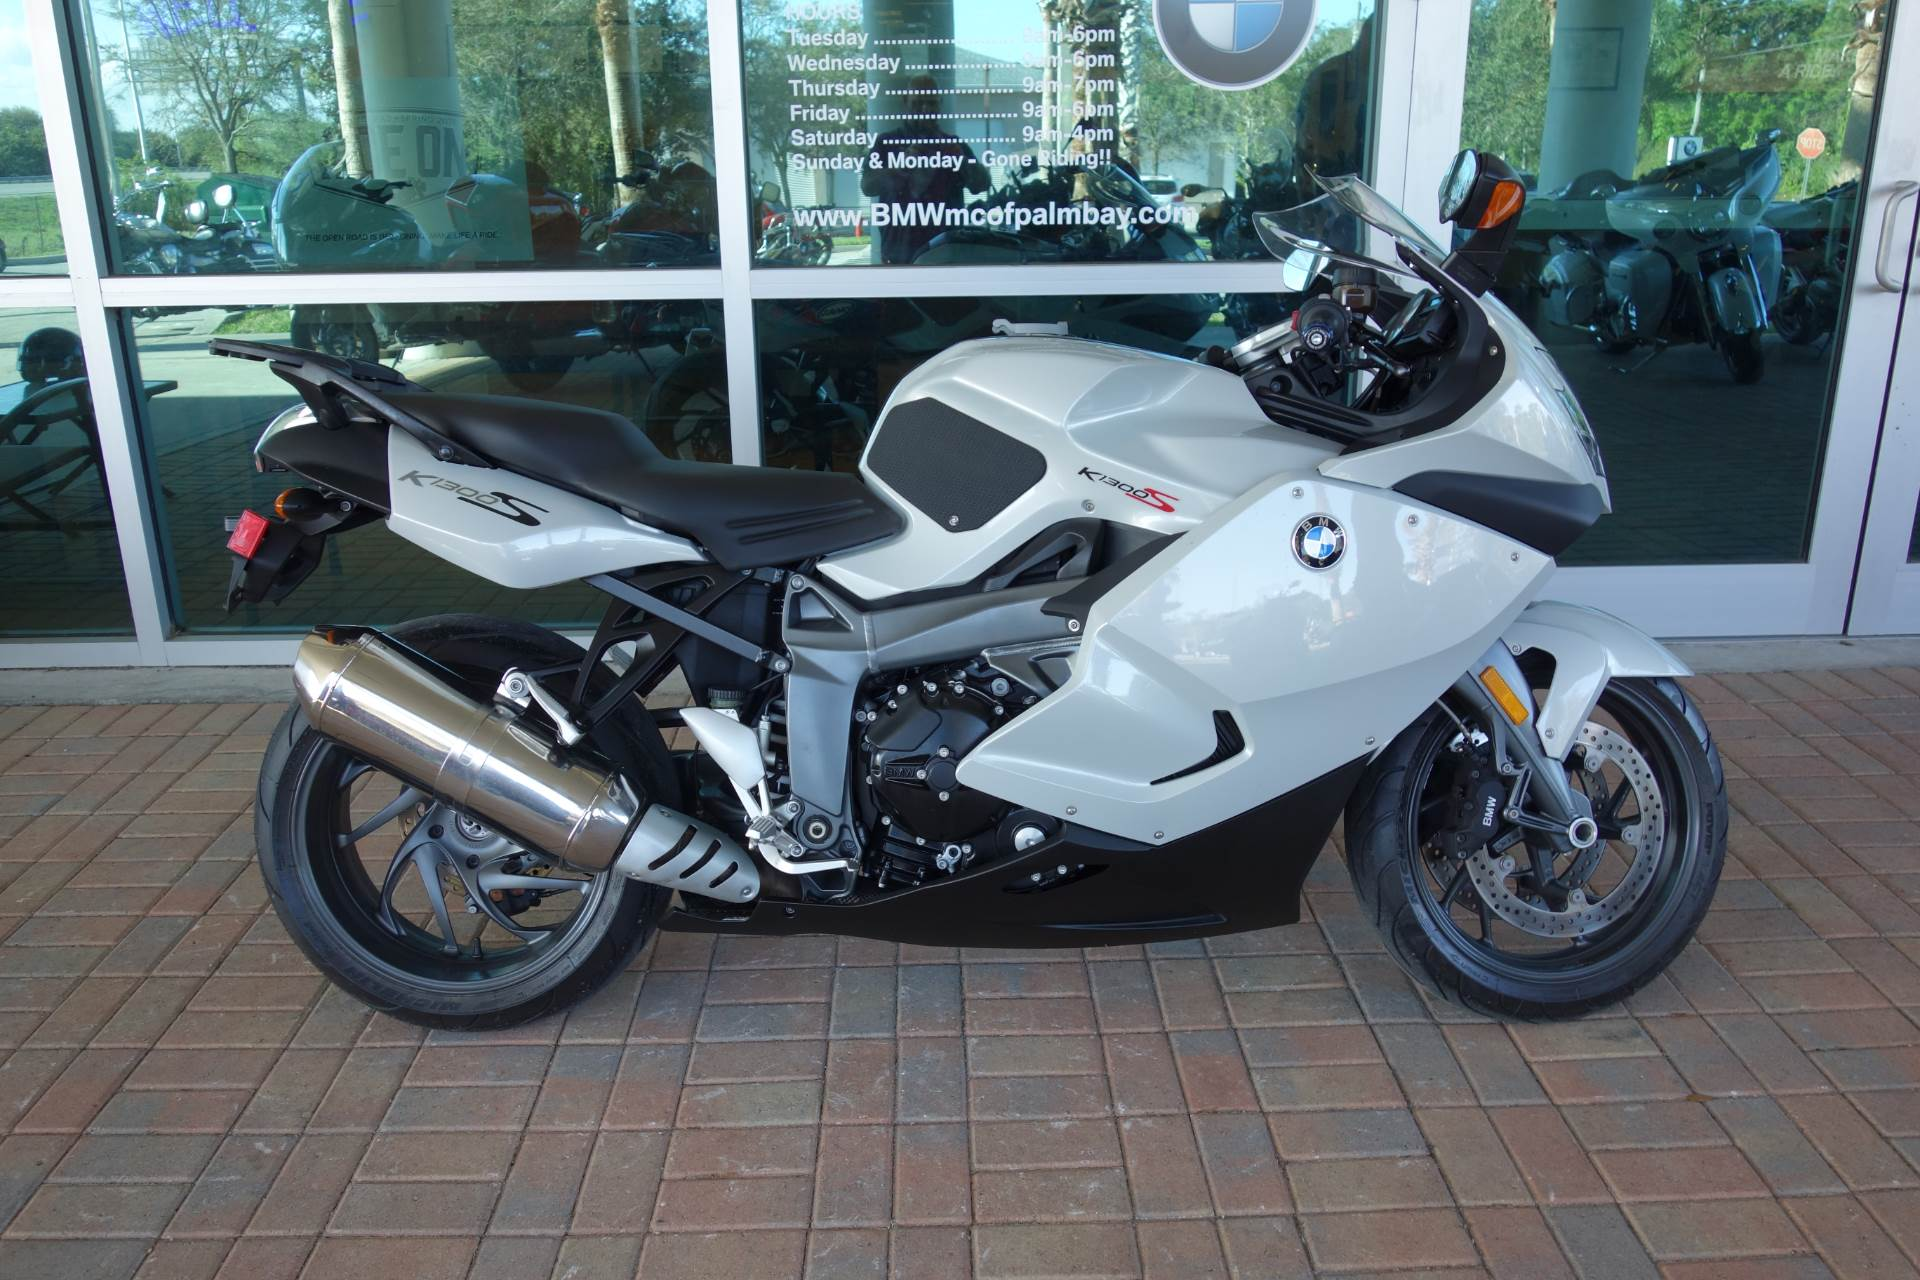 Used 2009 Bmw K 1300 S Light Grey Metallic Motorcycles In Palm Bay